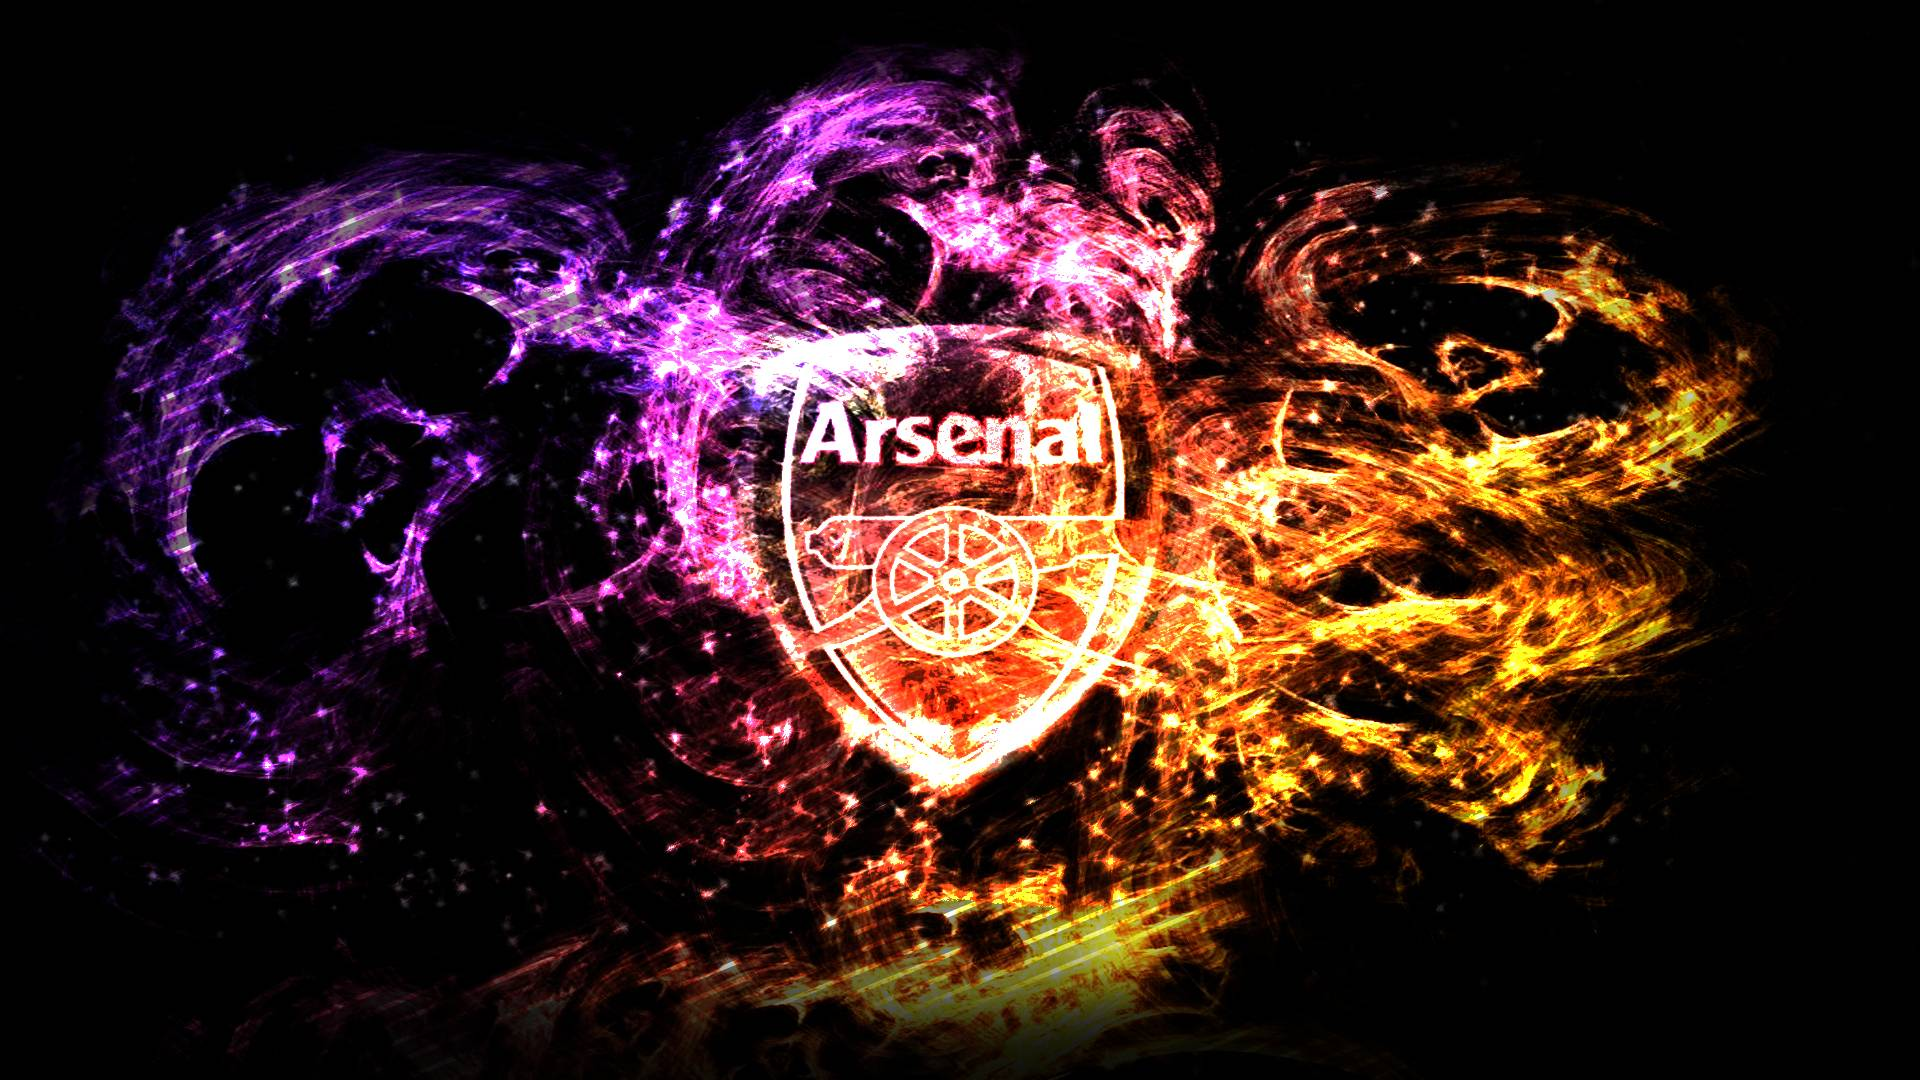 asenal hd wallpapers download arsenal pictures cool wallpapers